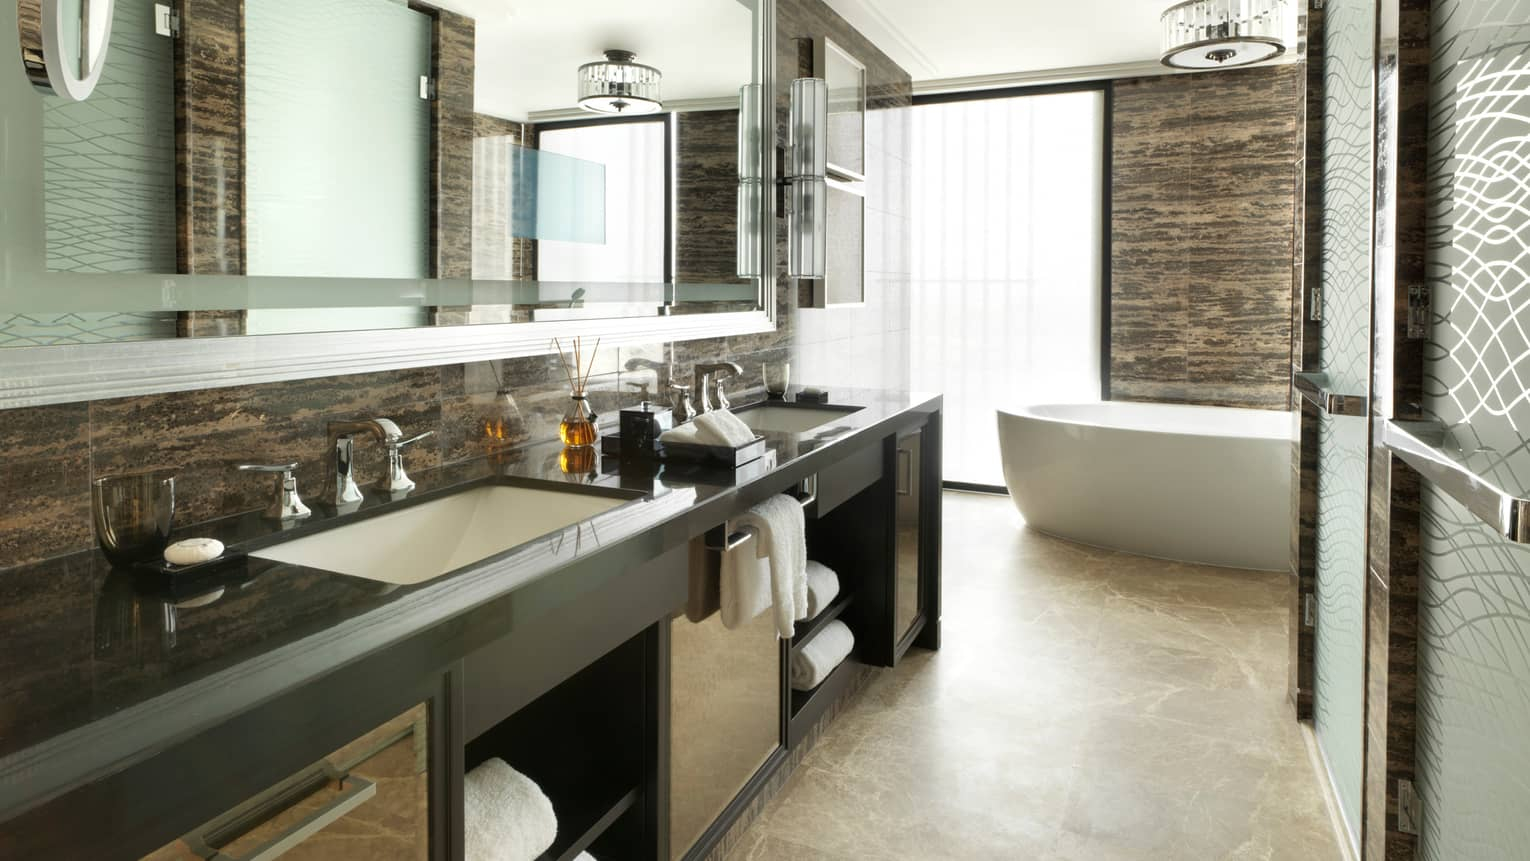 Premier Four Seasons Executive Suite large bathroom with double vanity sinks, glass shower, white soaker tub